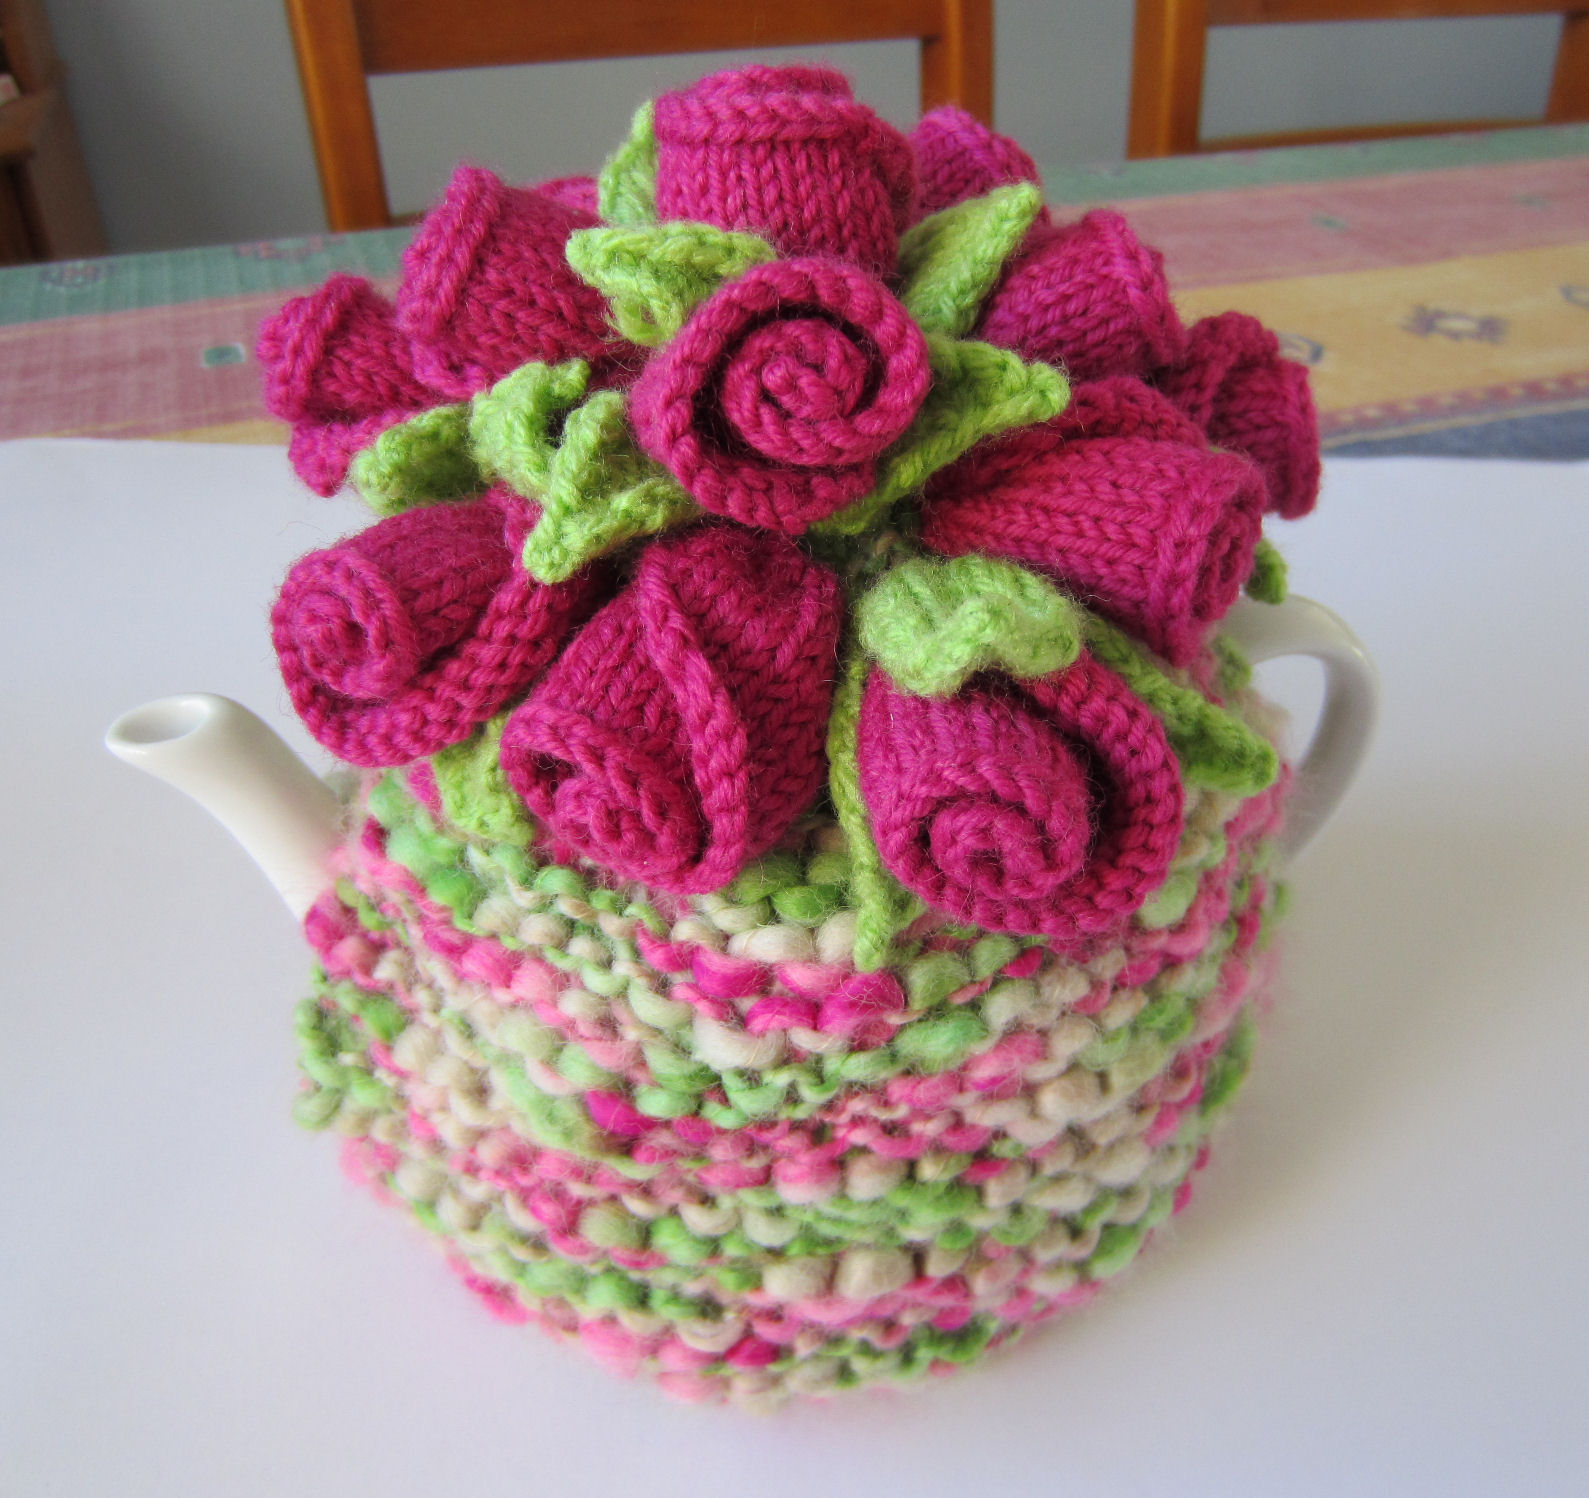 Justjen-knits&stitches: Rosebuds Tea Cosy